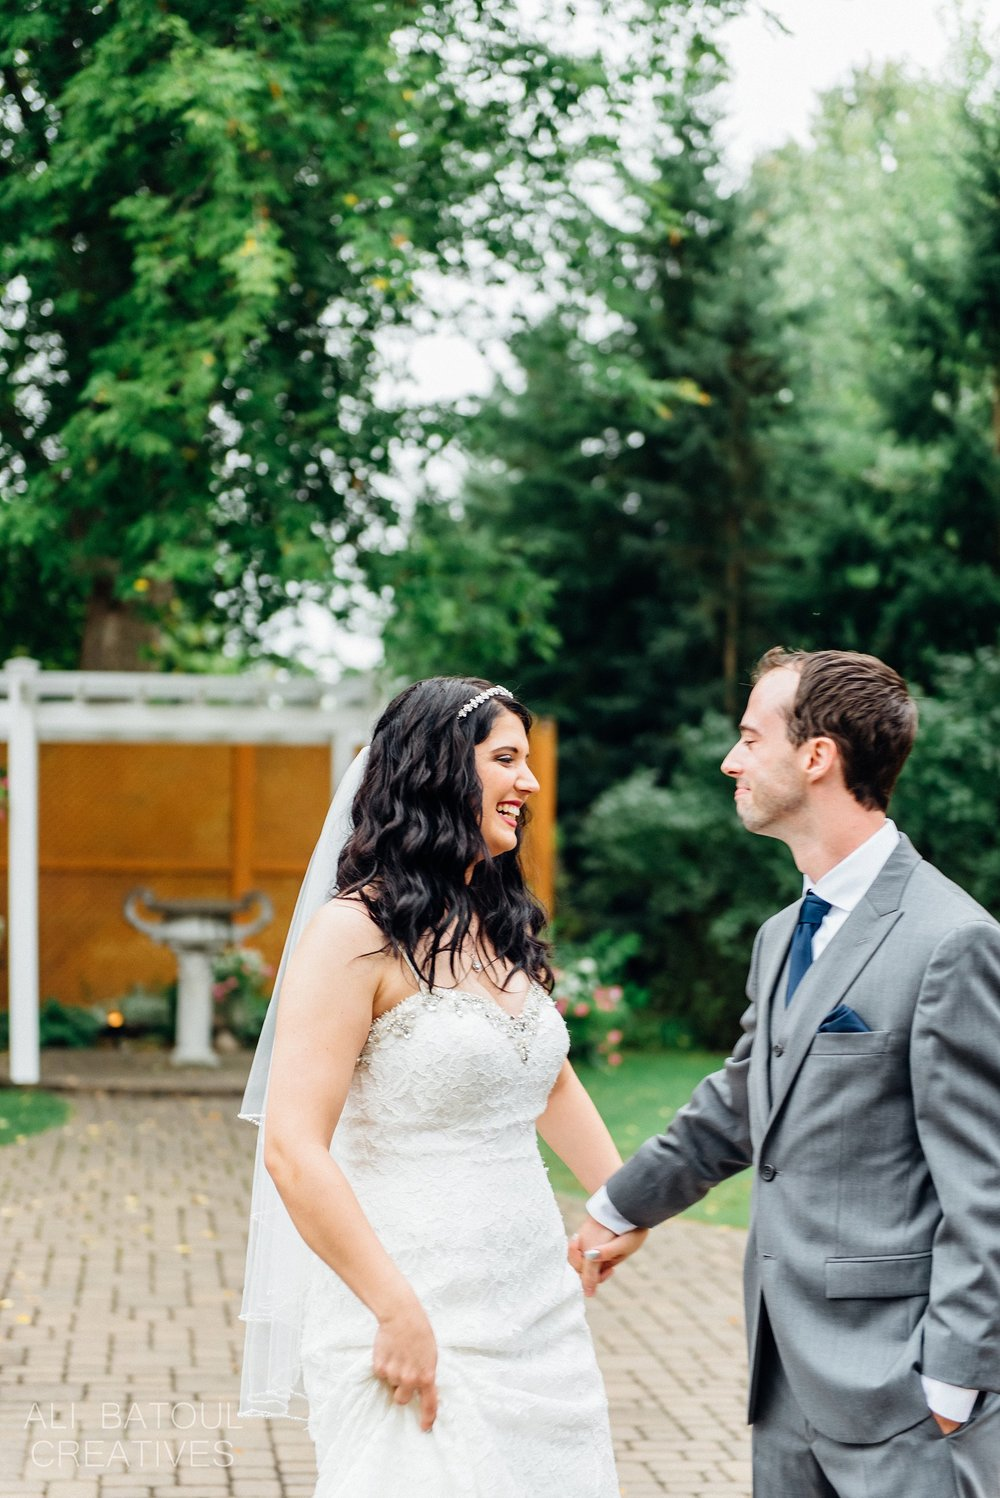 Jocelyn + Steve At The Schoolhouse Wedding - Ali and Batoul Fine Art Wedding Photography_0033.jpg